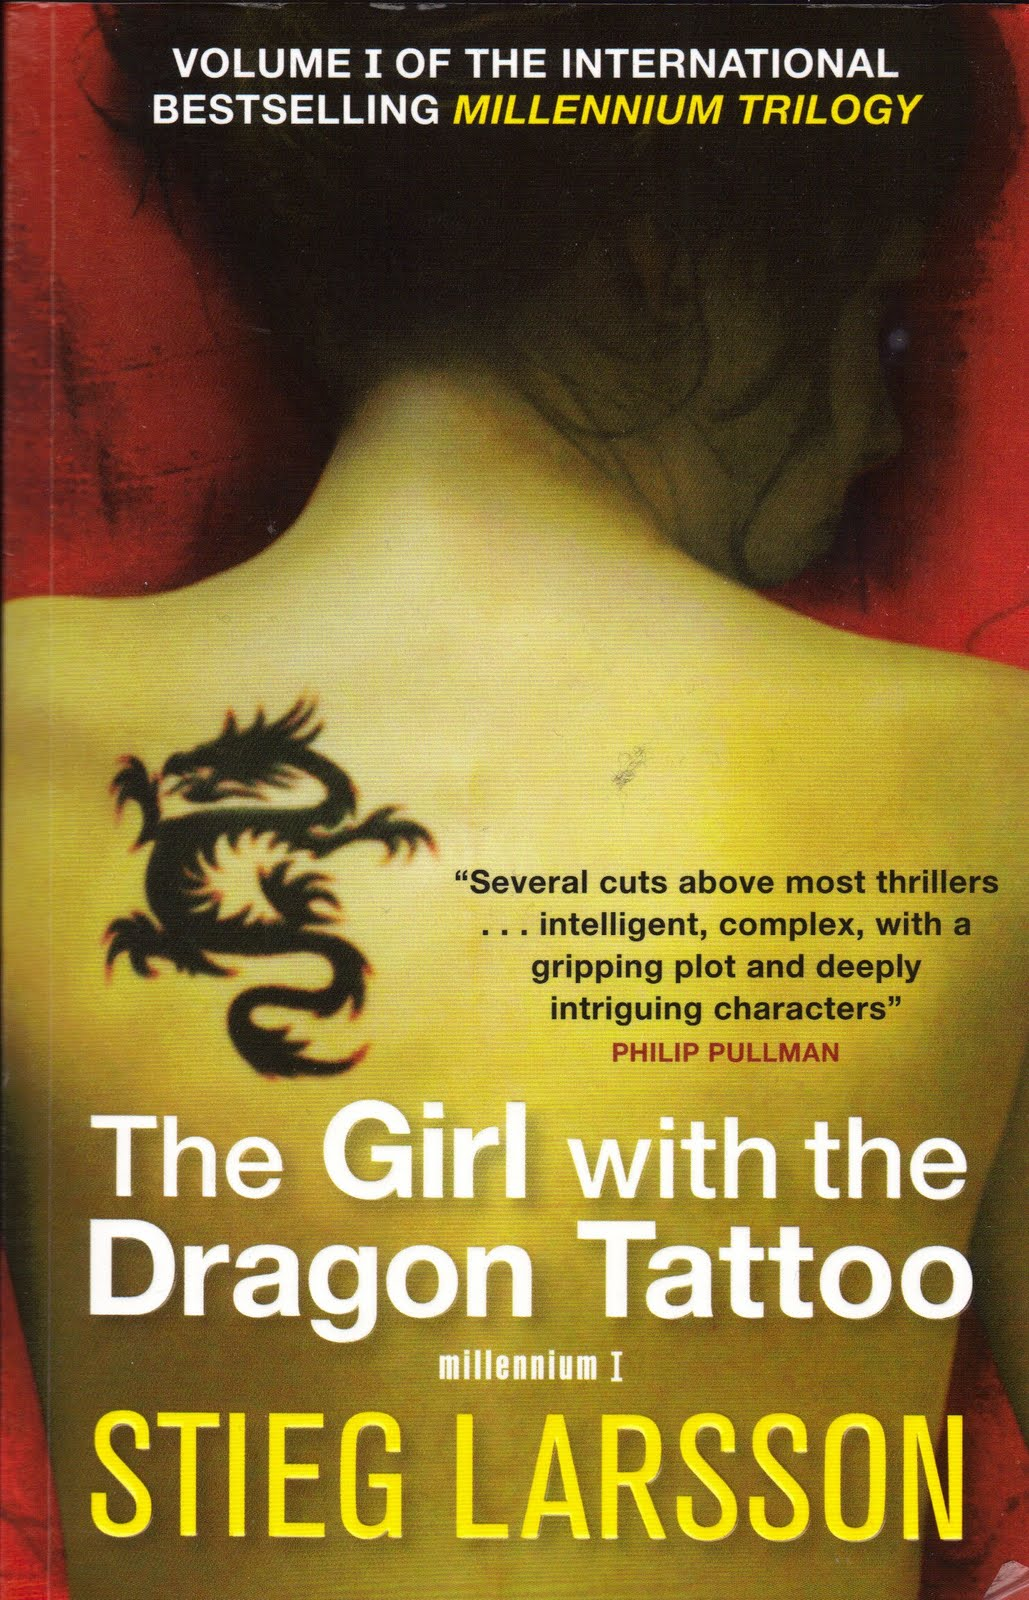 Jan 39 s book reviews 23 the girl with the dragon tattoo by for The girl with the dragon tattoo books